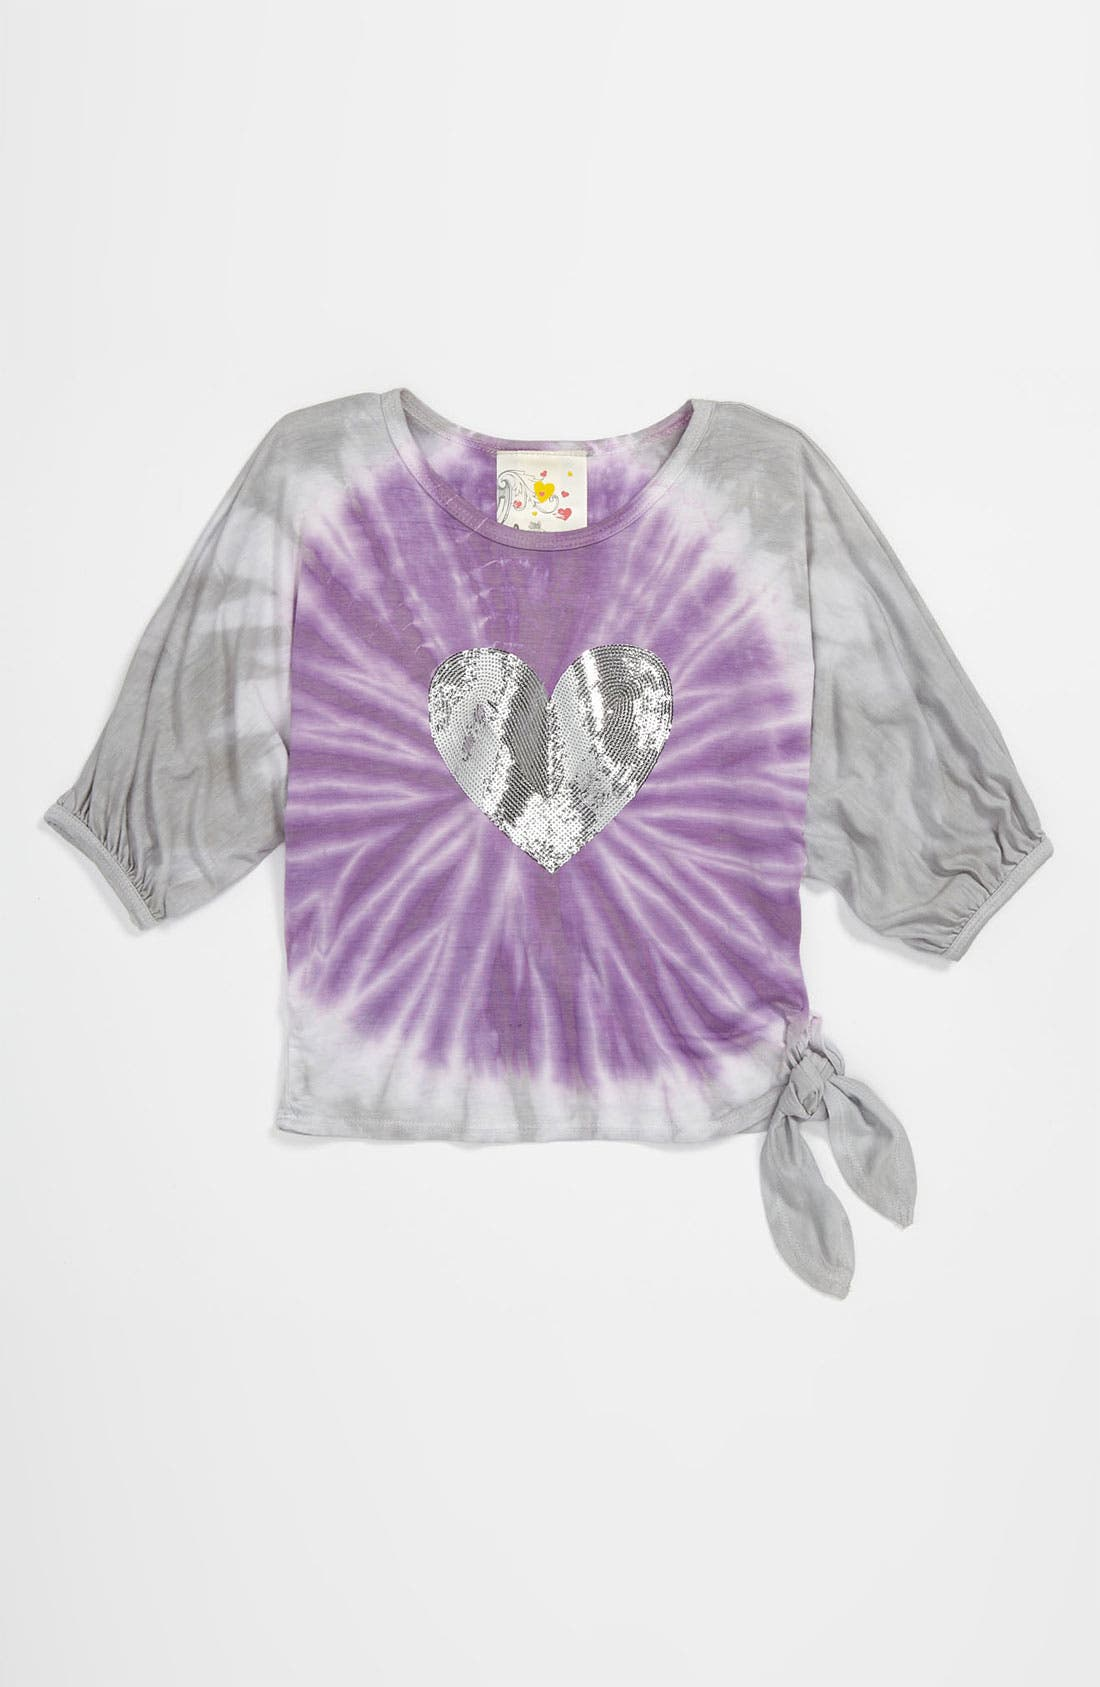 Main Image - Jenna & Jessie Sequin Heart Tee (Little Girls)